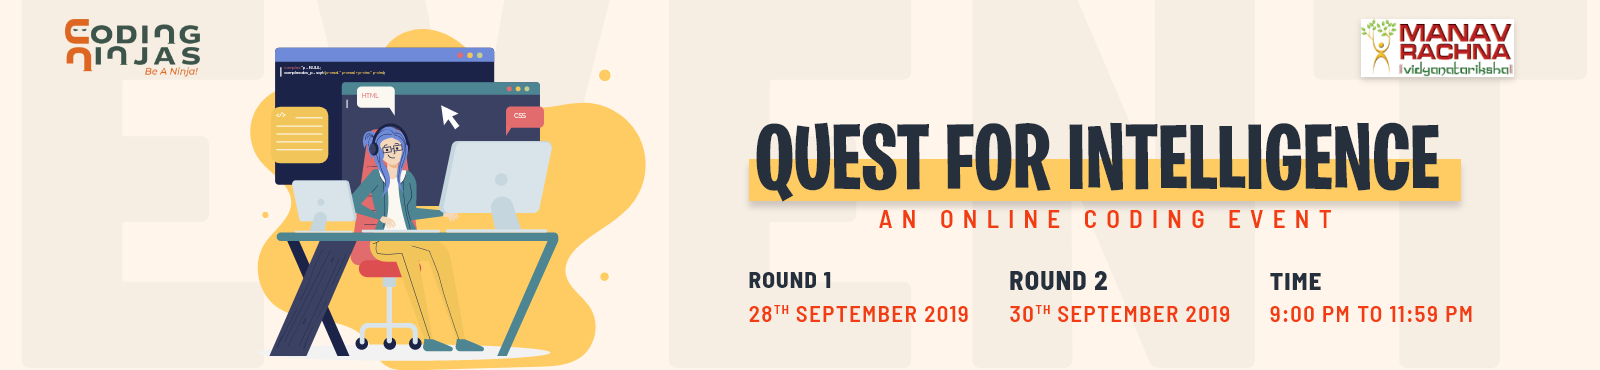 Quest for Intelligence - An Online Coding Event